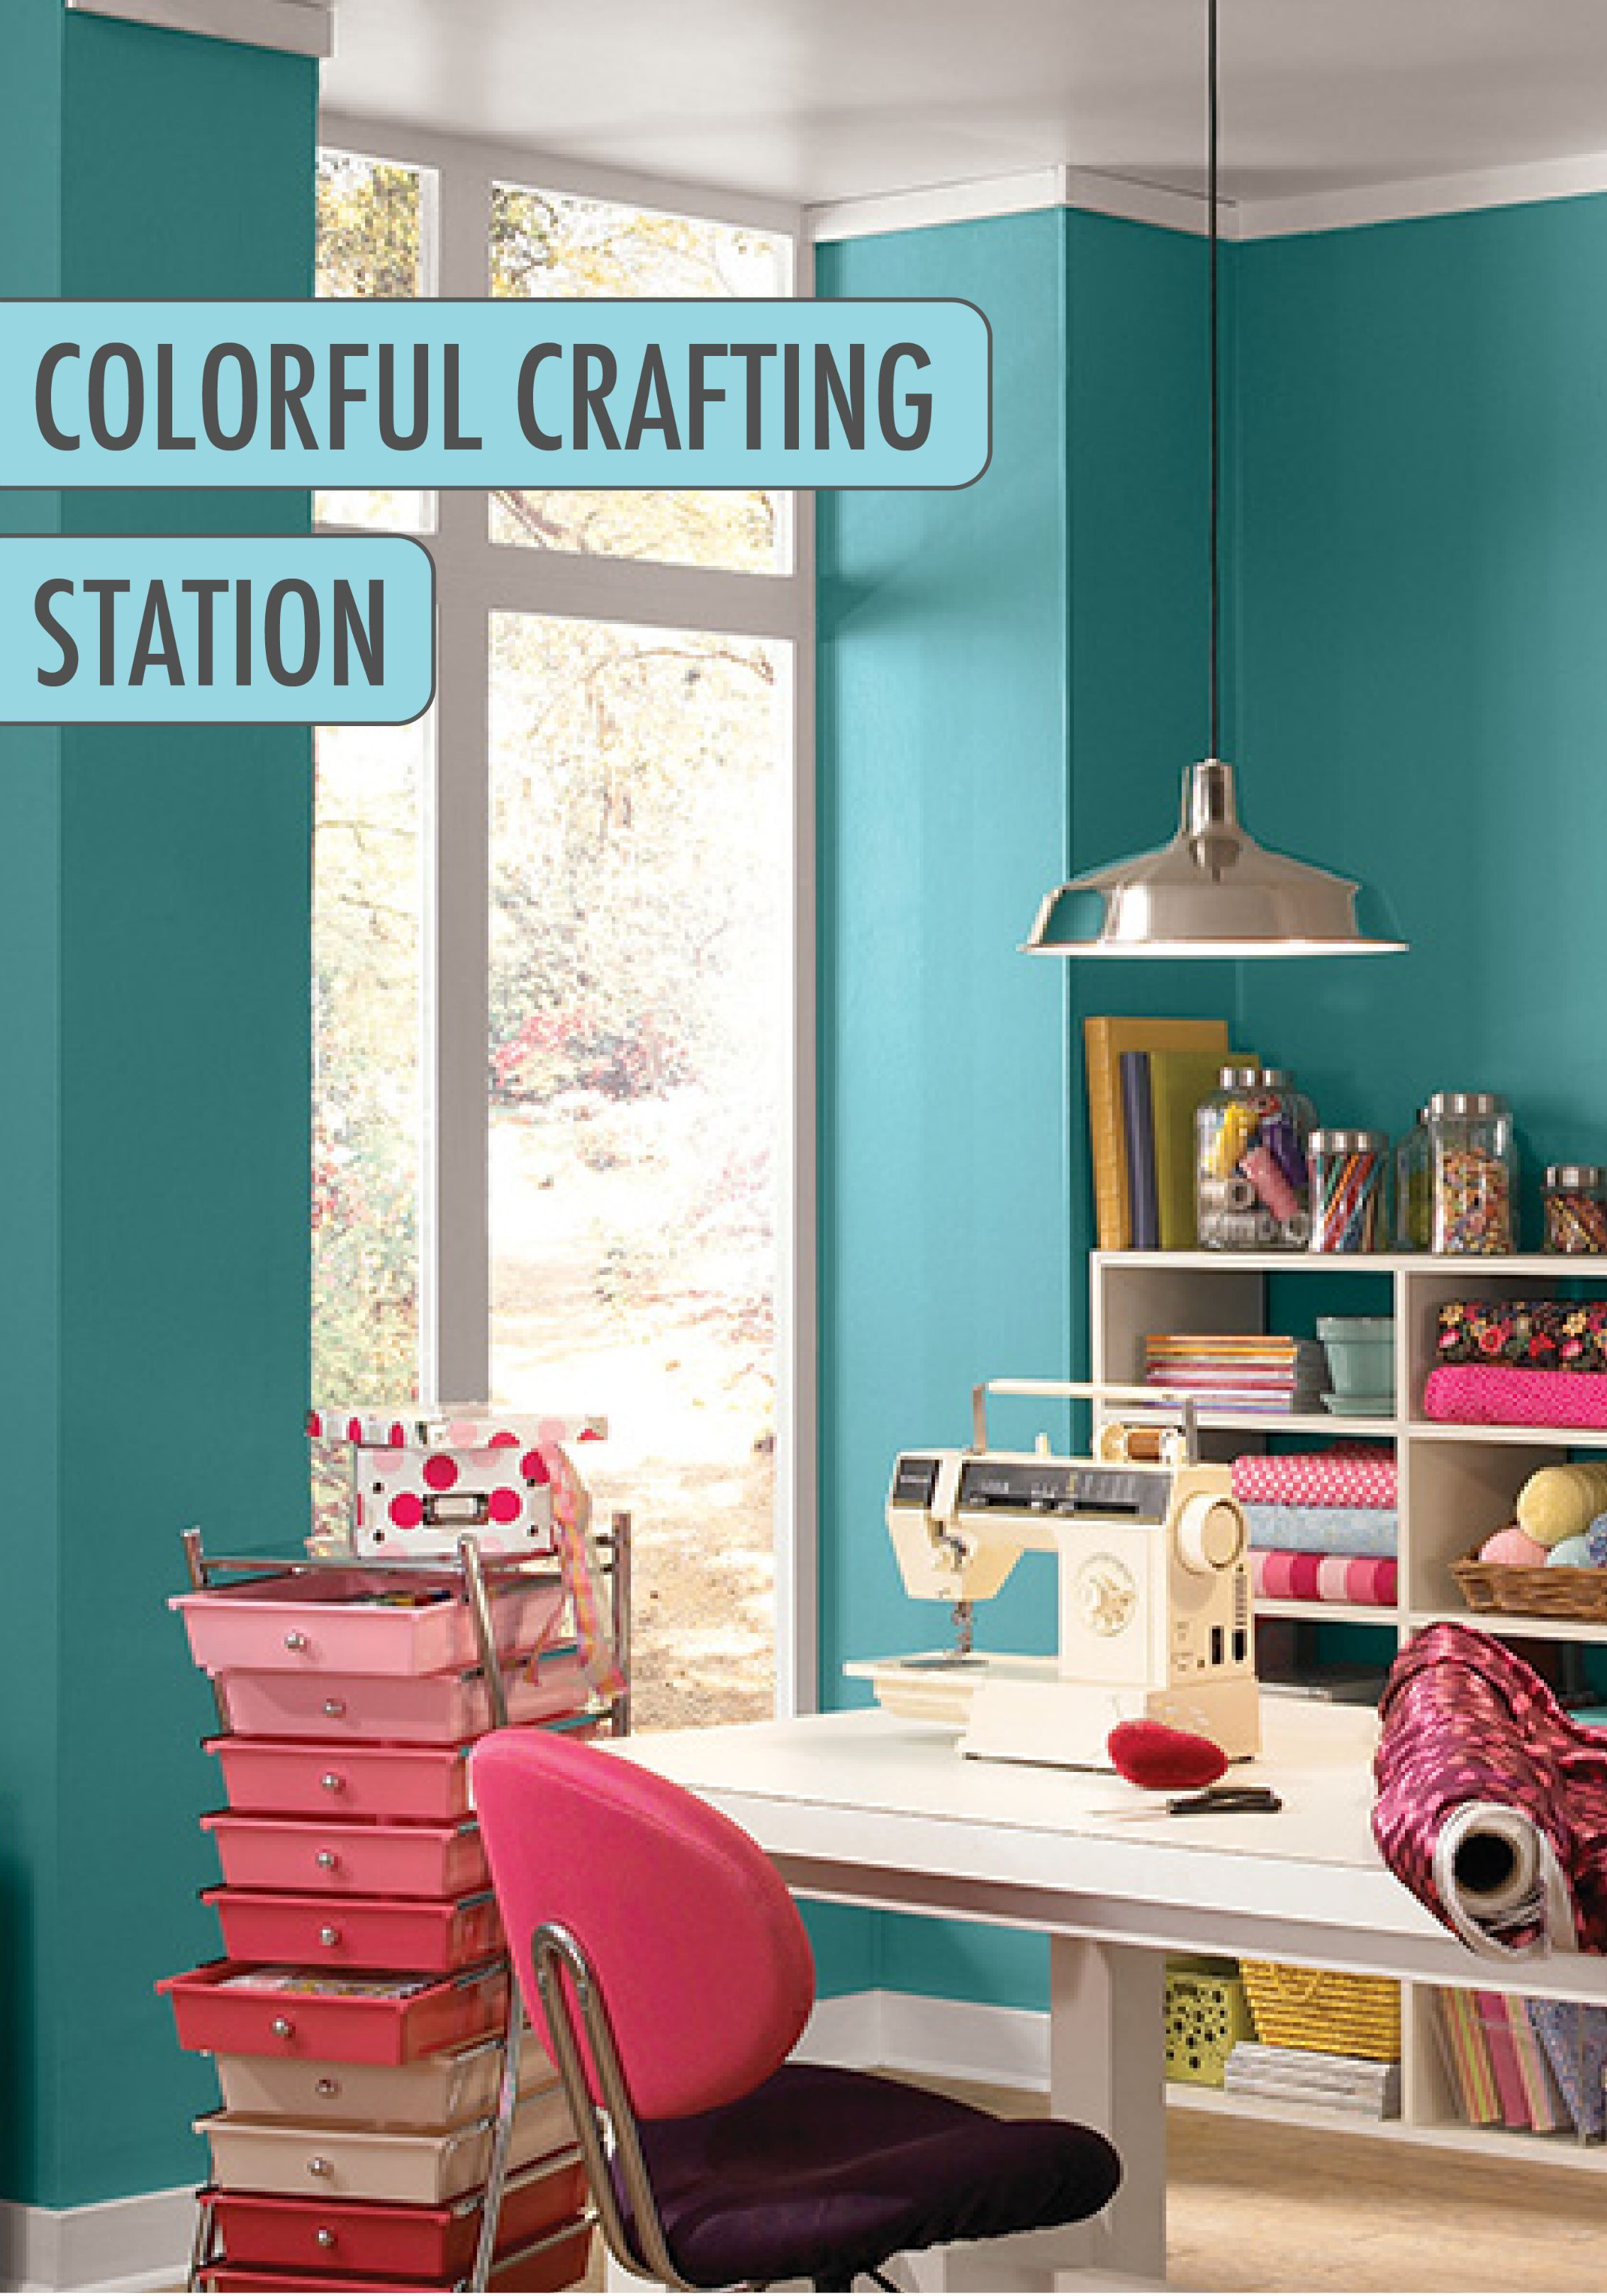 Everyone Needs An Uplifting Paint Color In Their Office Or Worke To Help Bring Energy And